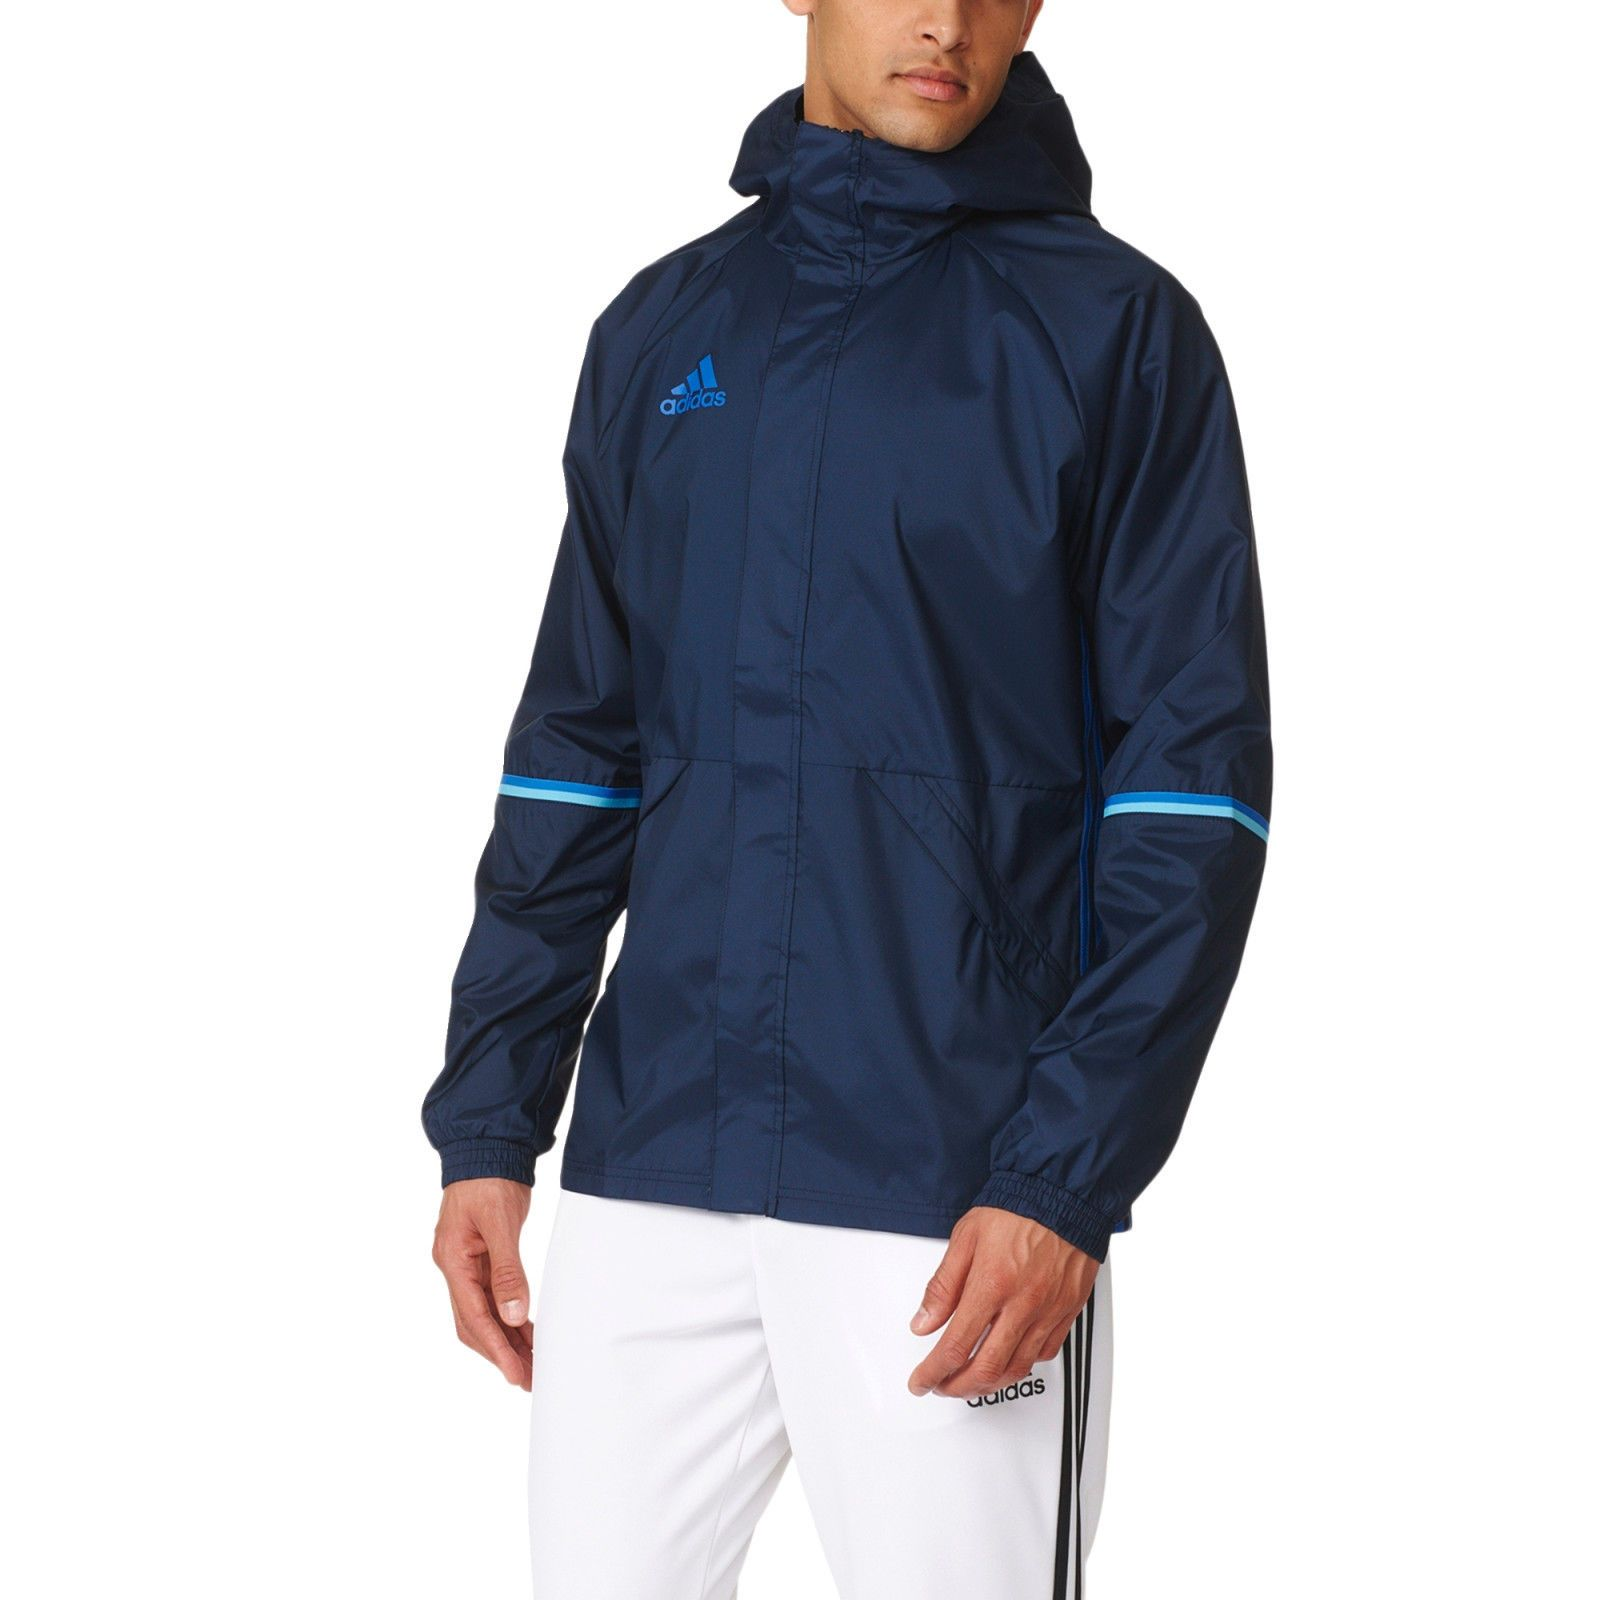 Barón marco tenaz  Adidas Men Rain Jacket Waterproof Condivo Hoodie Training Blue Running  AC4407 | Adidas men, Jackets, Rain jacket